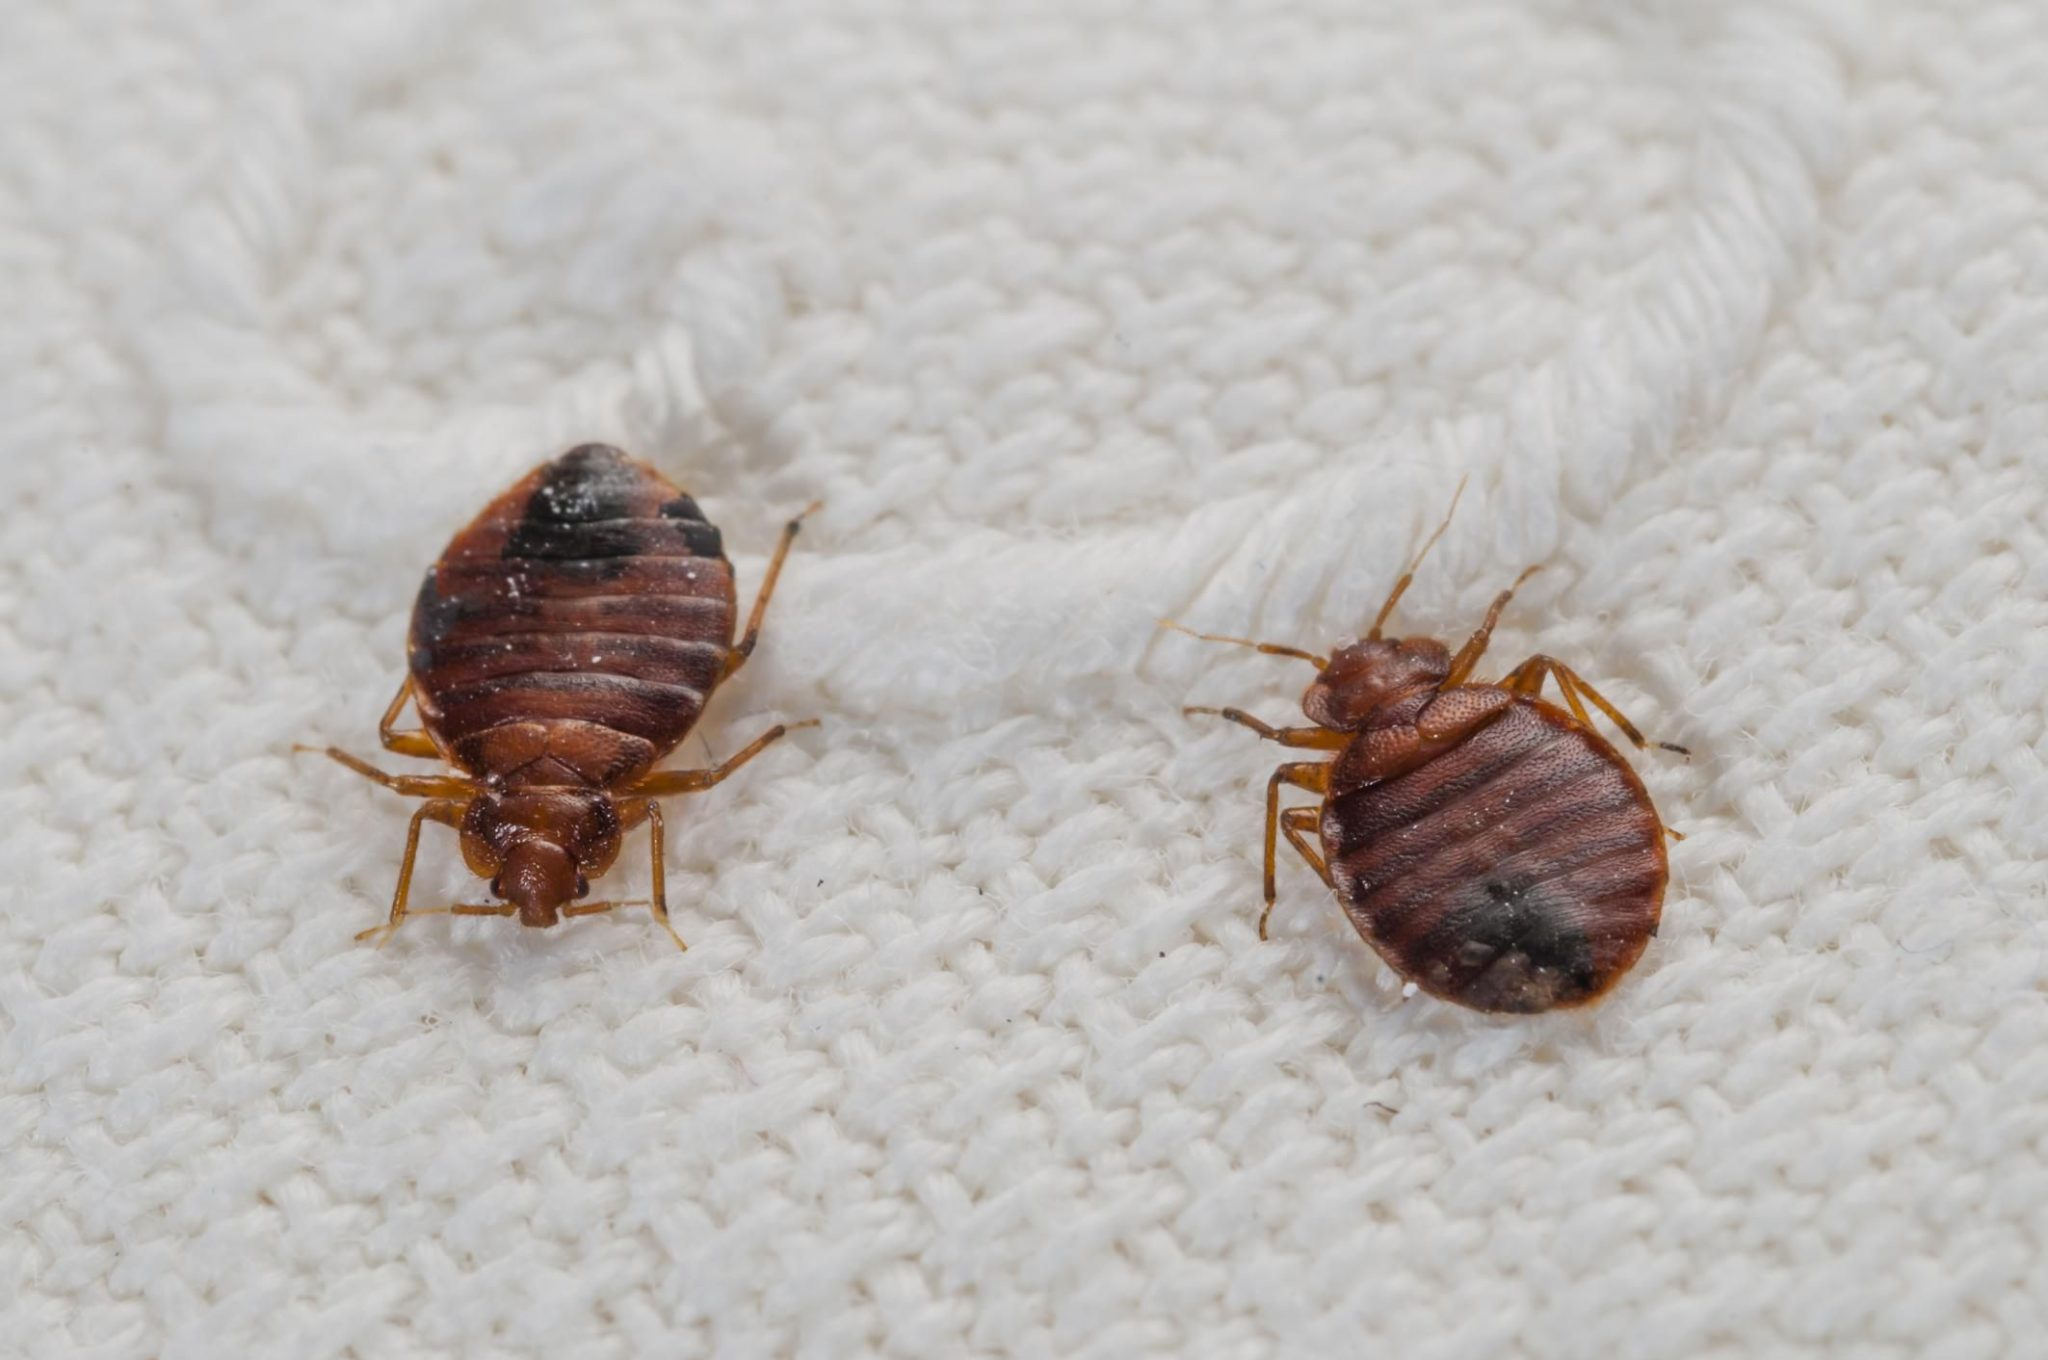 How to Treat Bedbugs in Furniture